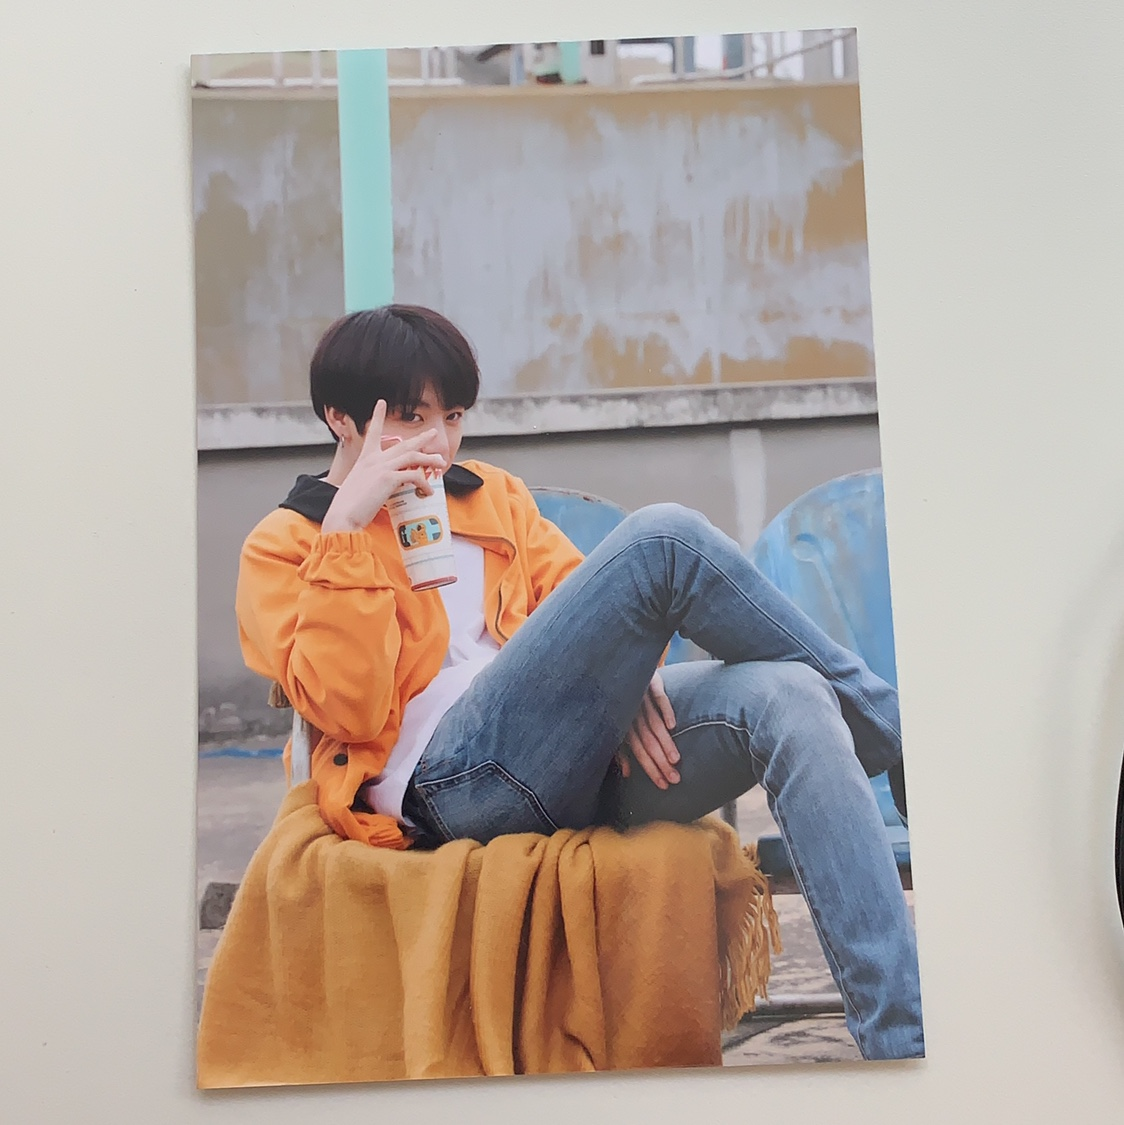 350589e3d Live Photo from bts exhibit in NY Jungkook euphoria... - Depop